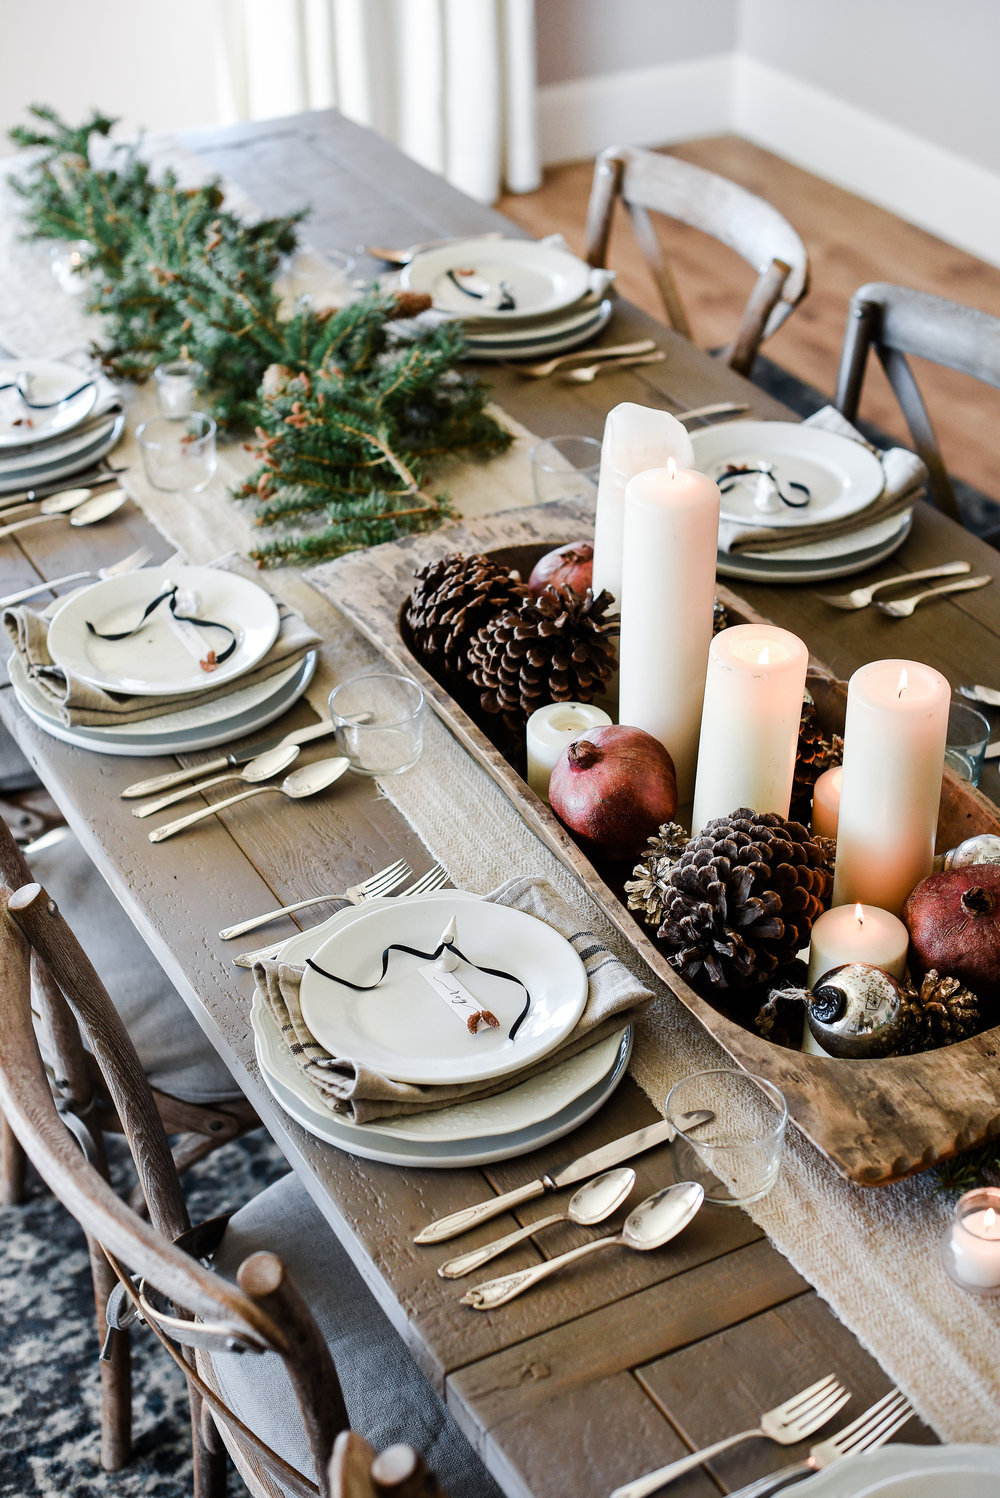 Formal Christmas table with farmhouse style | boxwoodavenue.com #christmasdecor #farmhousechristmas